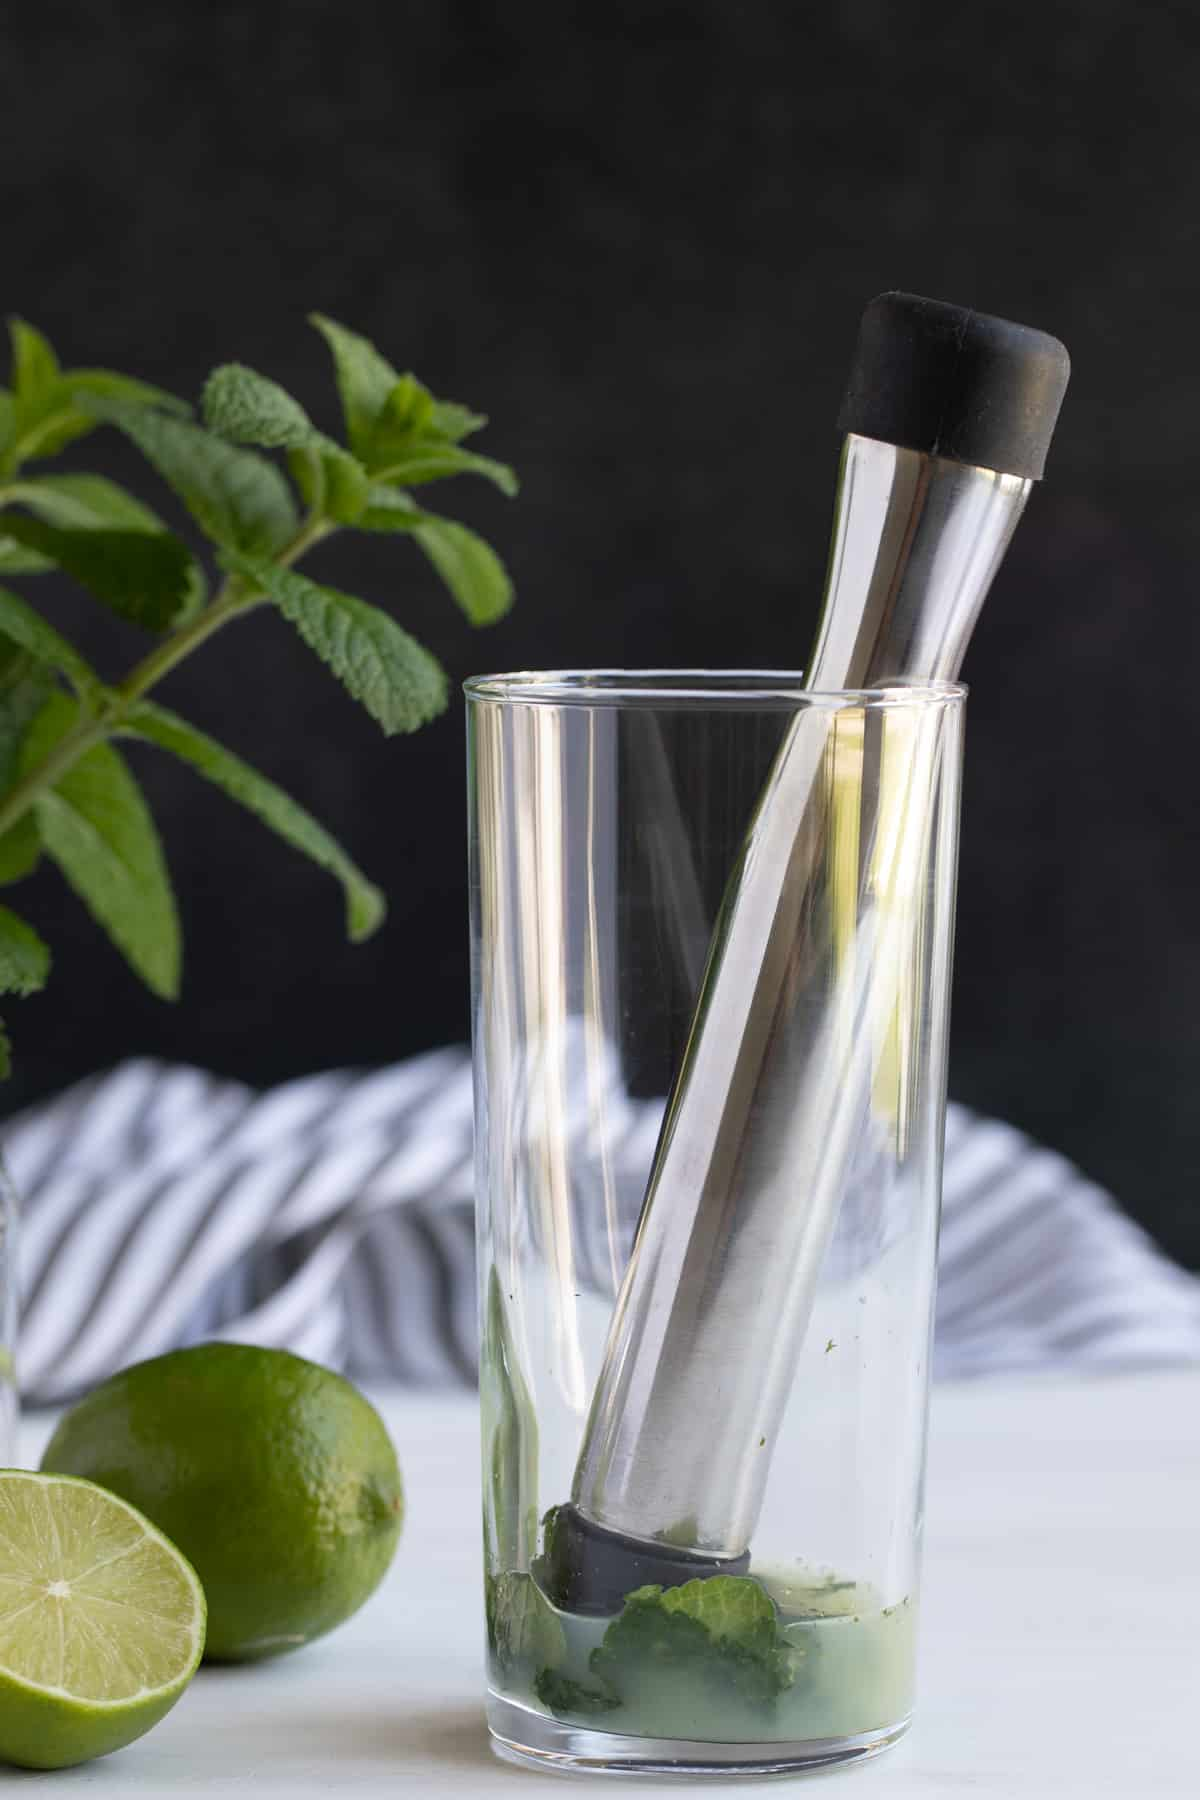 Front view of a stainless muddler in a glass with fresh mint and lime juice.